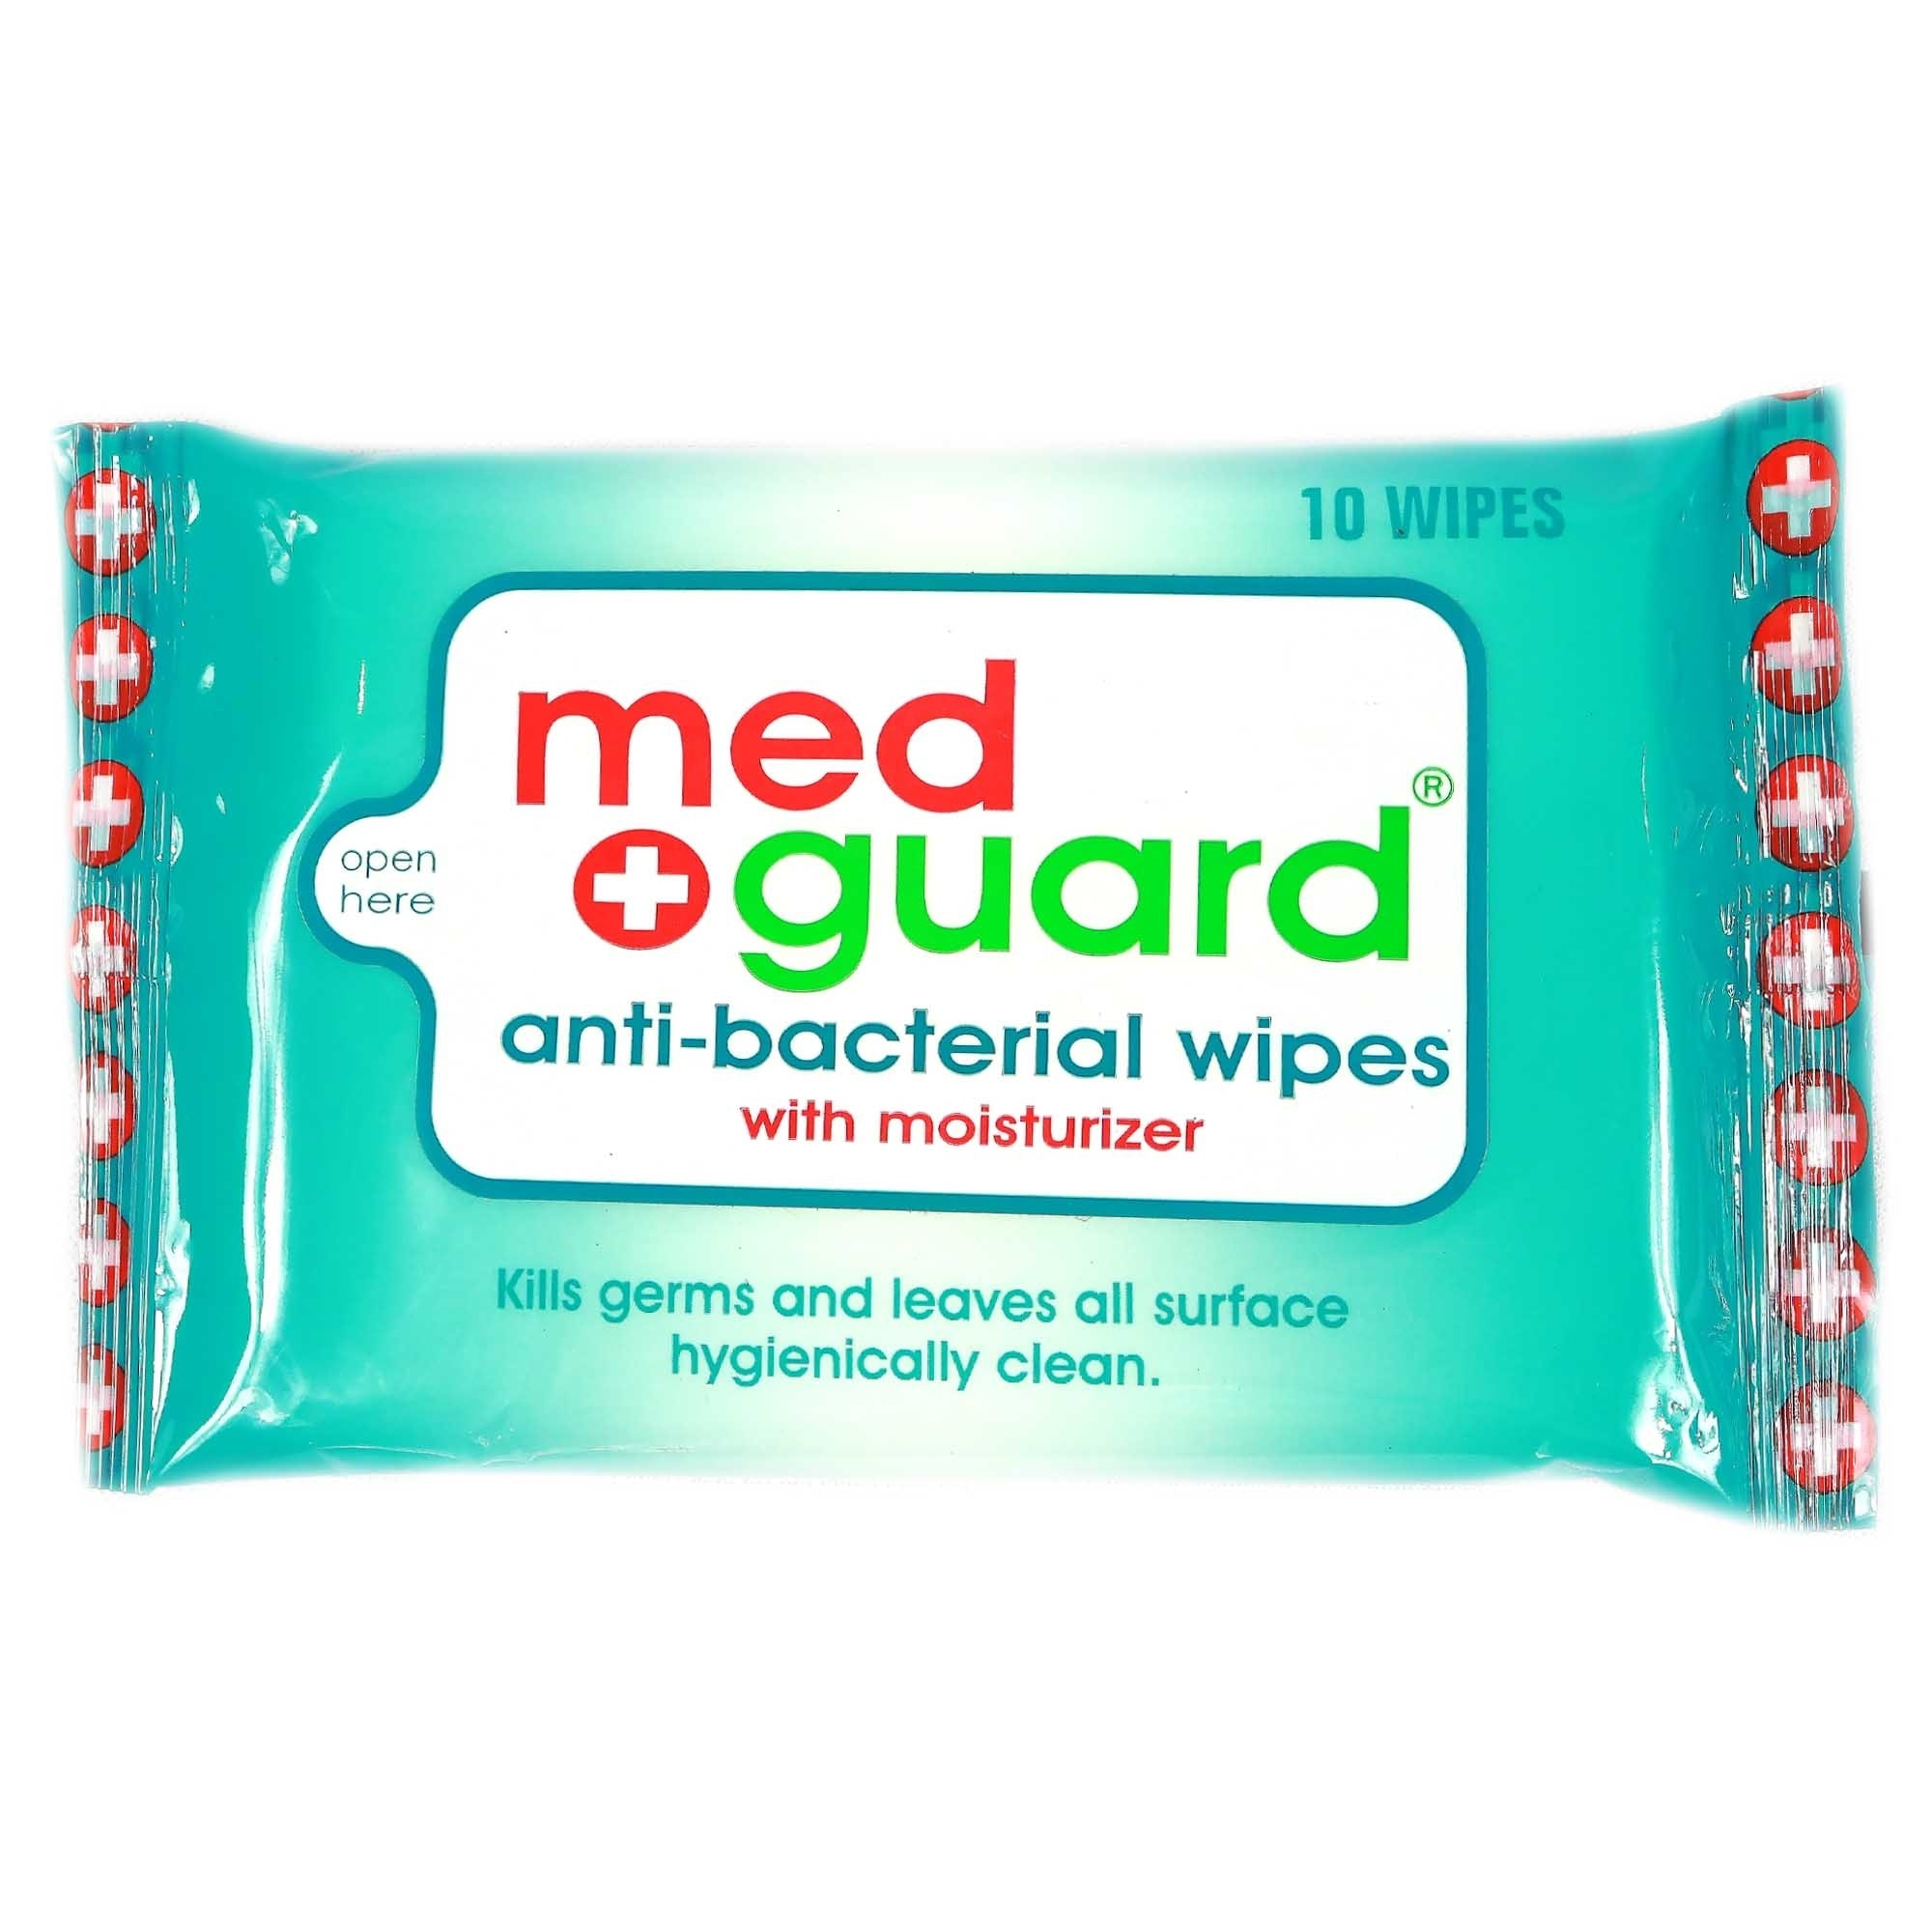 MED GUARDAnti-Bacterial Wipes with Moisturizer 10 Sheets,Face and Body WipesHELLOWT